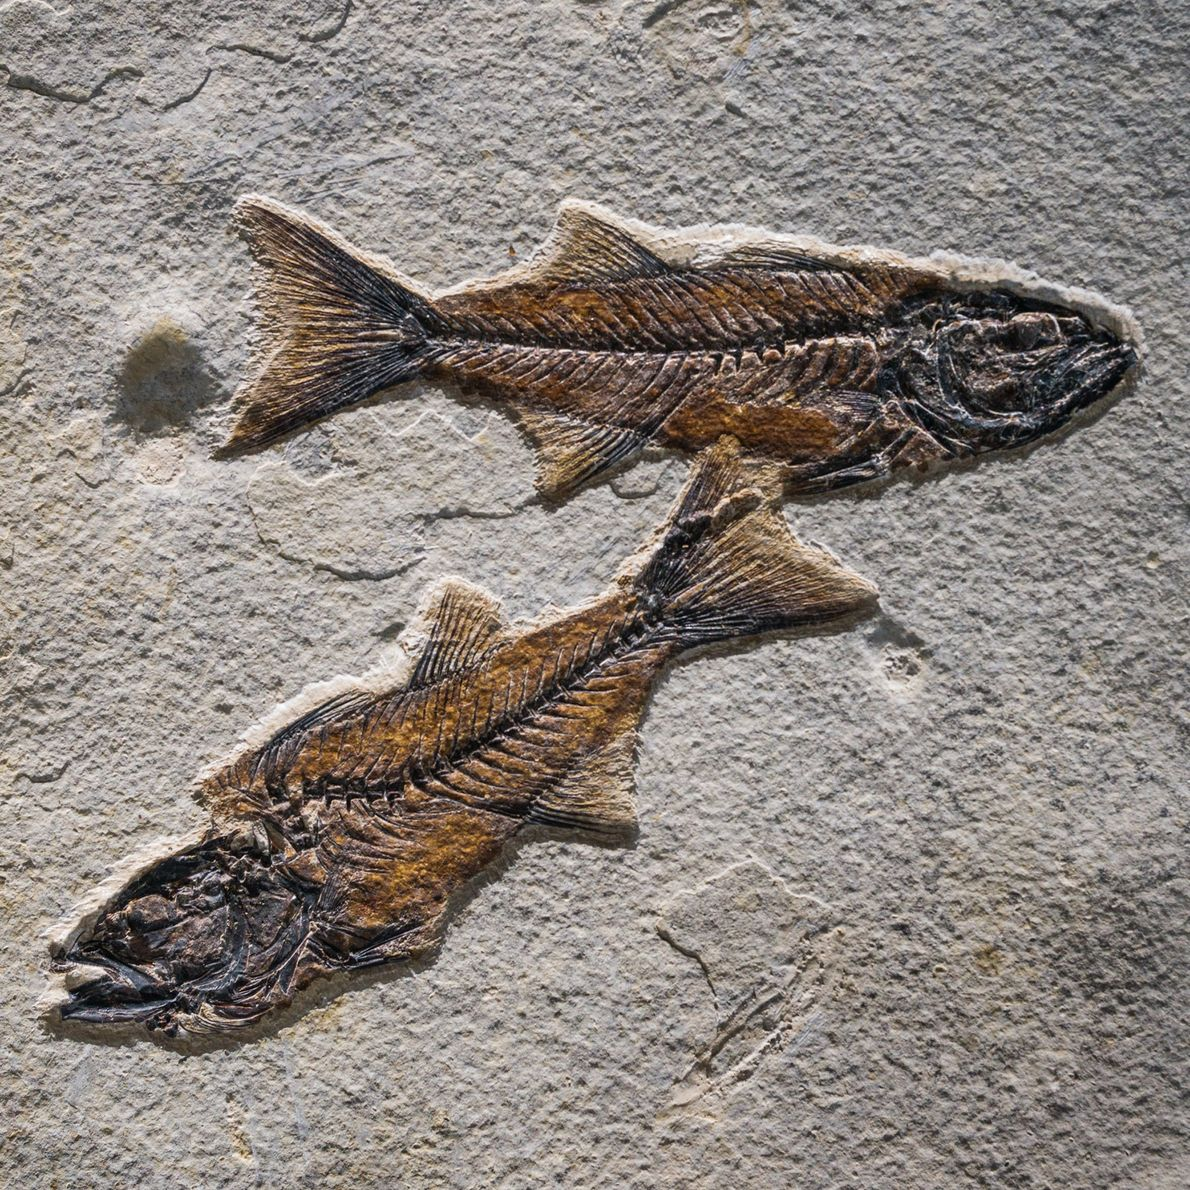 Fish (Mioplosus labracoides) are the most common finds in the Kemmerer, Wyoming, lake.